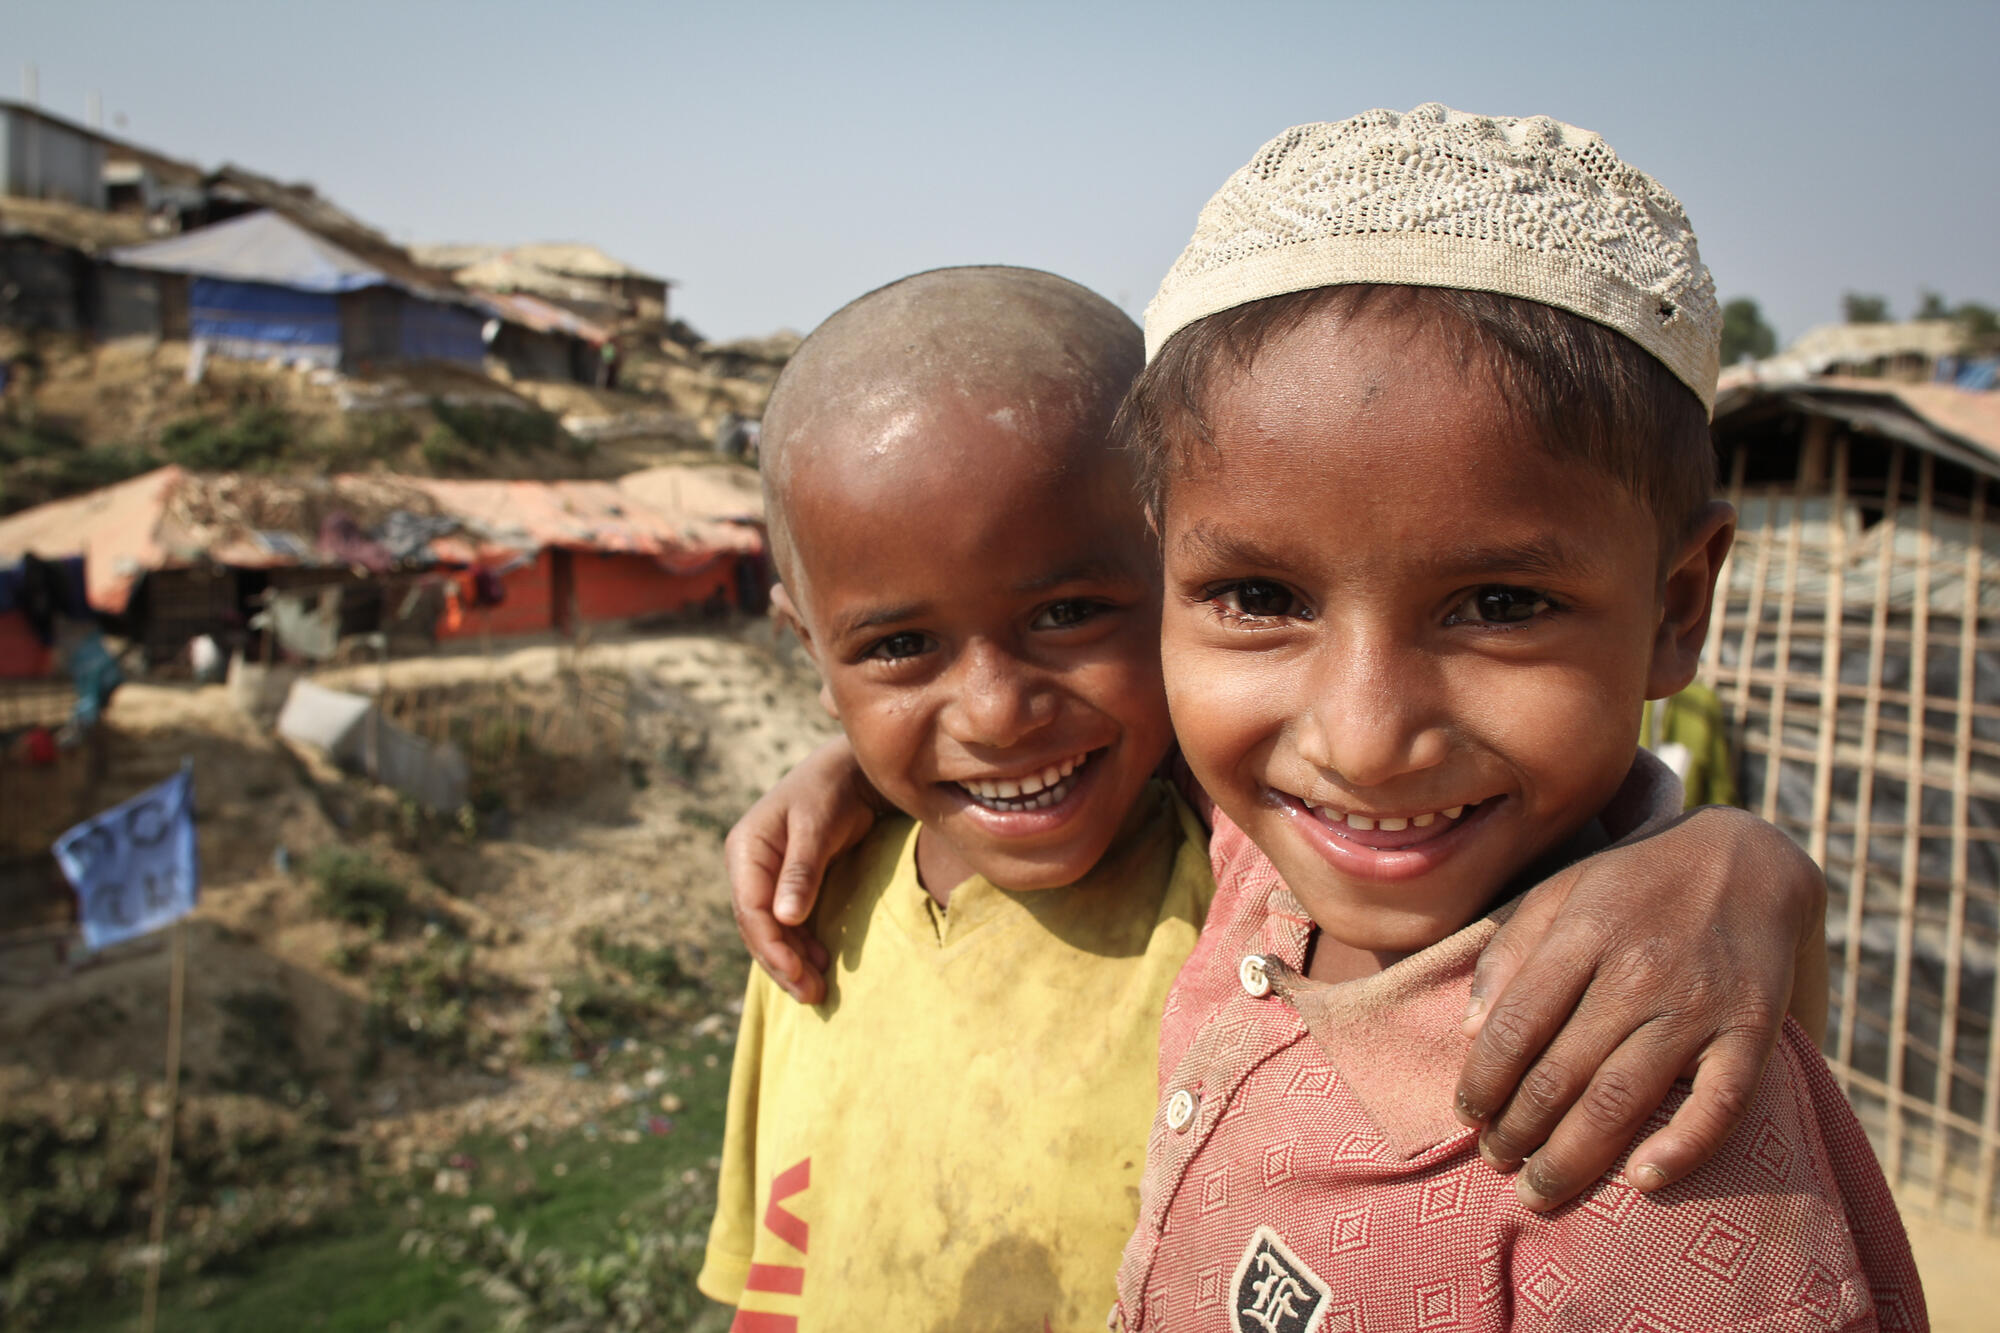 Two children smiling as they walk through the hot and dusty streets of Kutupalong makeshift camp in Cox's Bazar district.